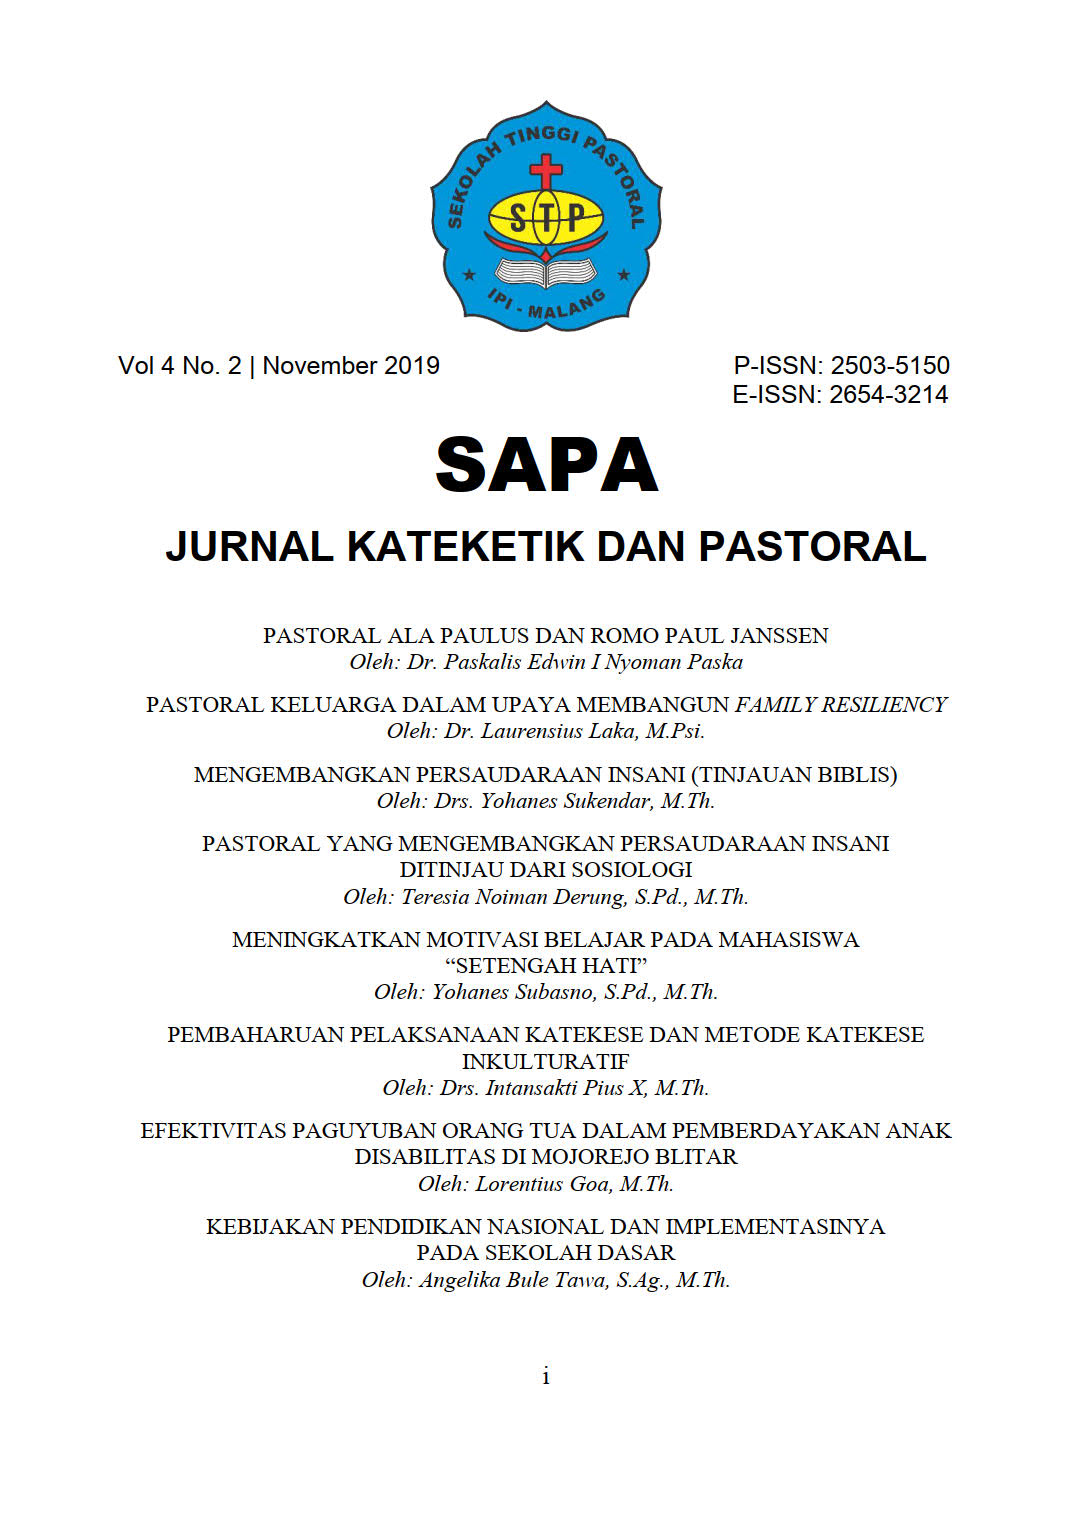 SAPA volume 4 number 2